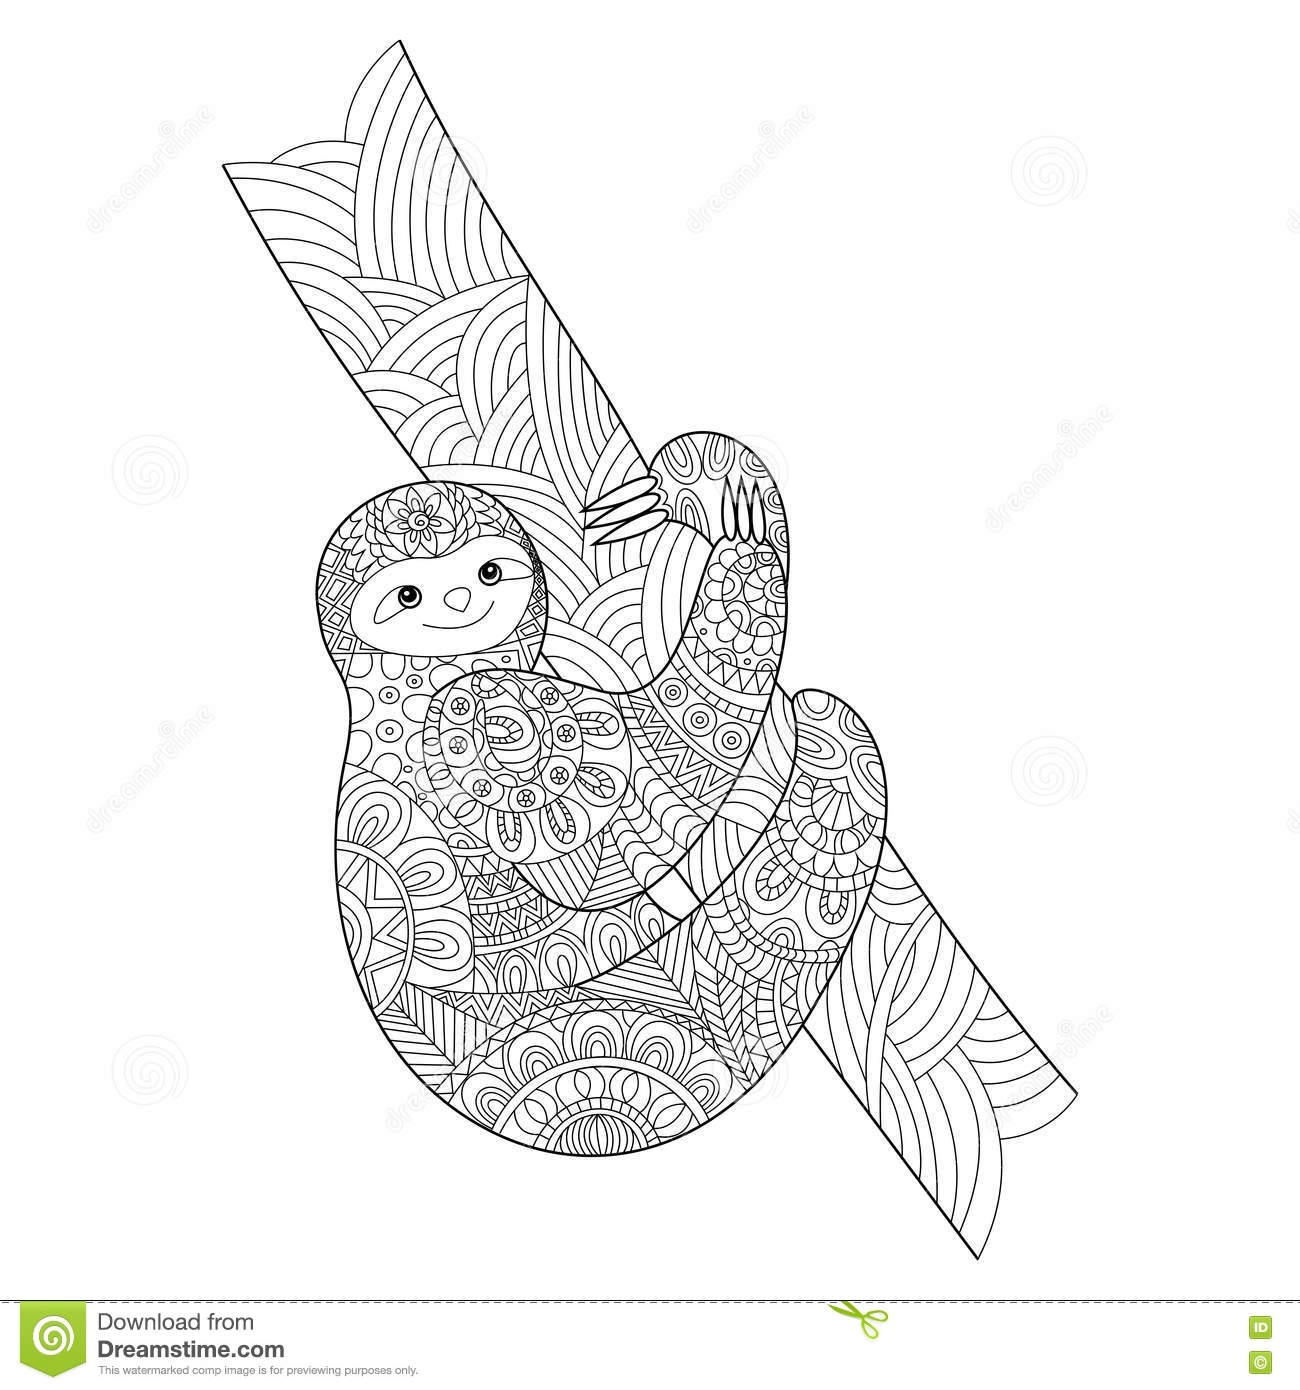 rainforest animals coloring pages - stock illustration sloth coloring book adults vector illustration image